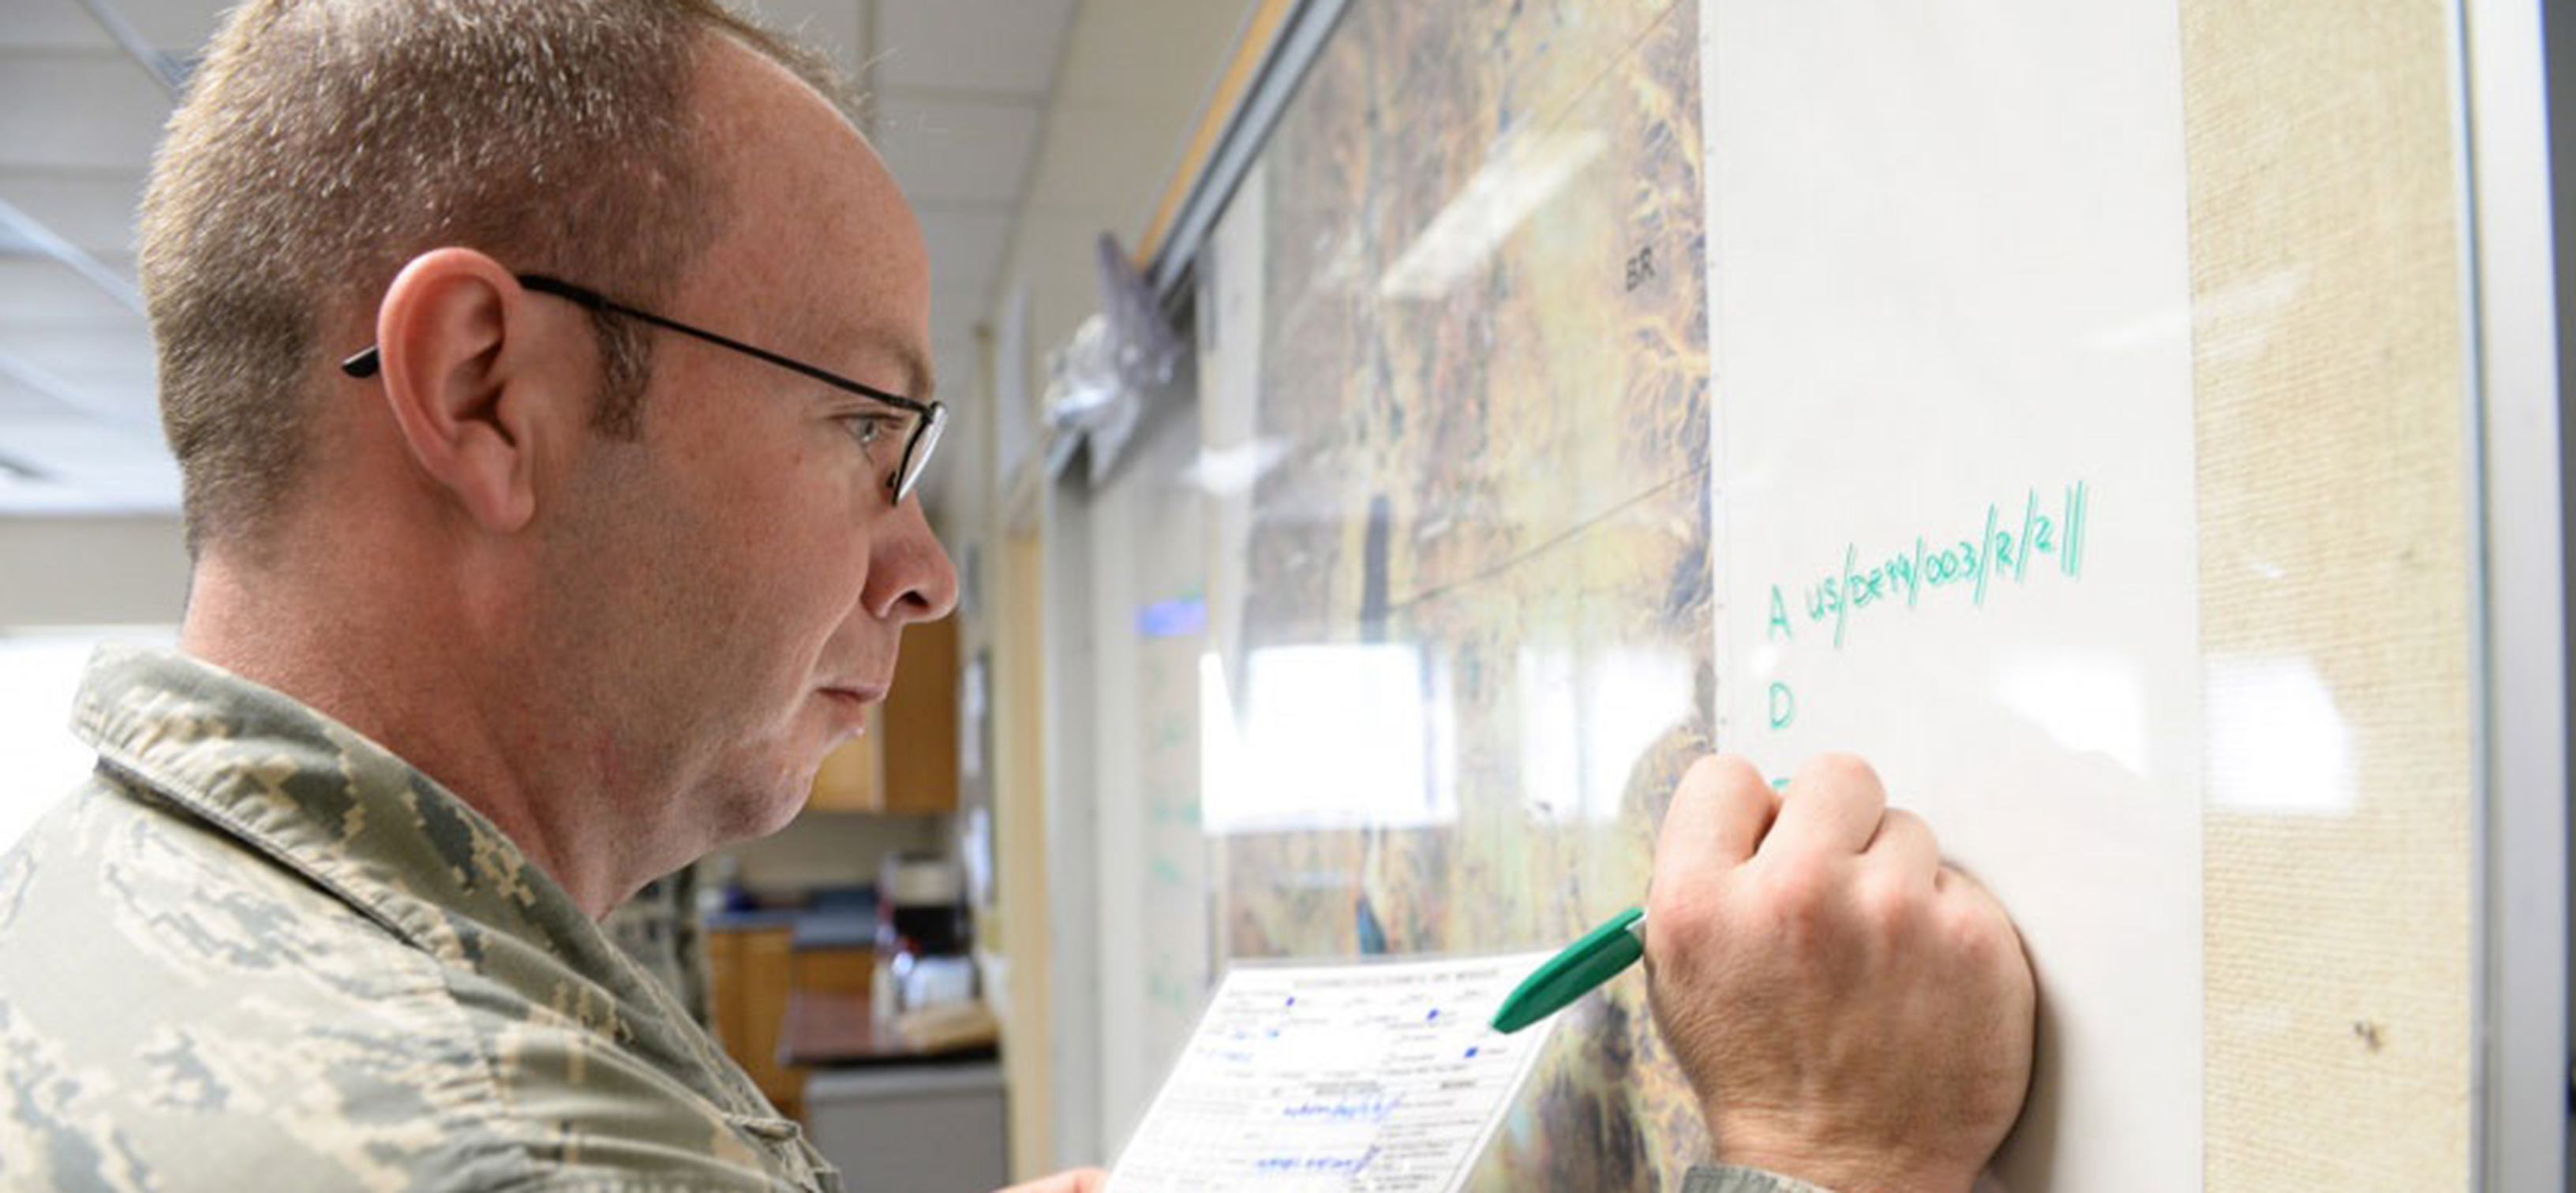 Military student writing on whiteboard